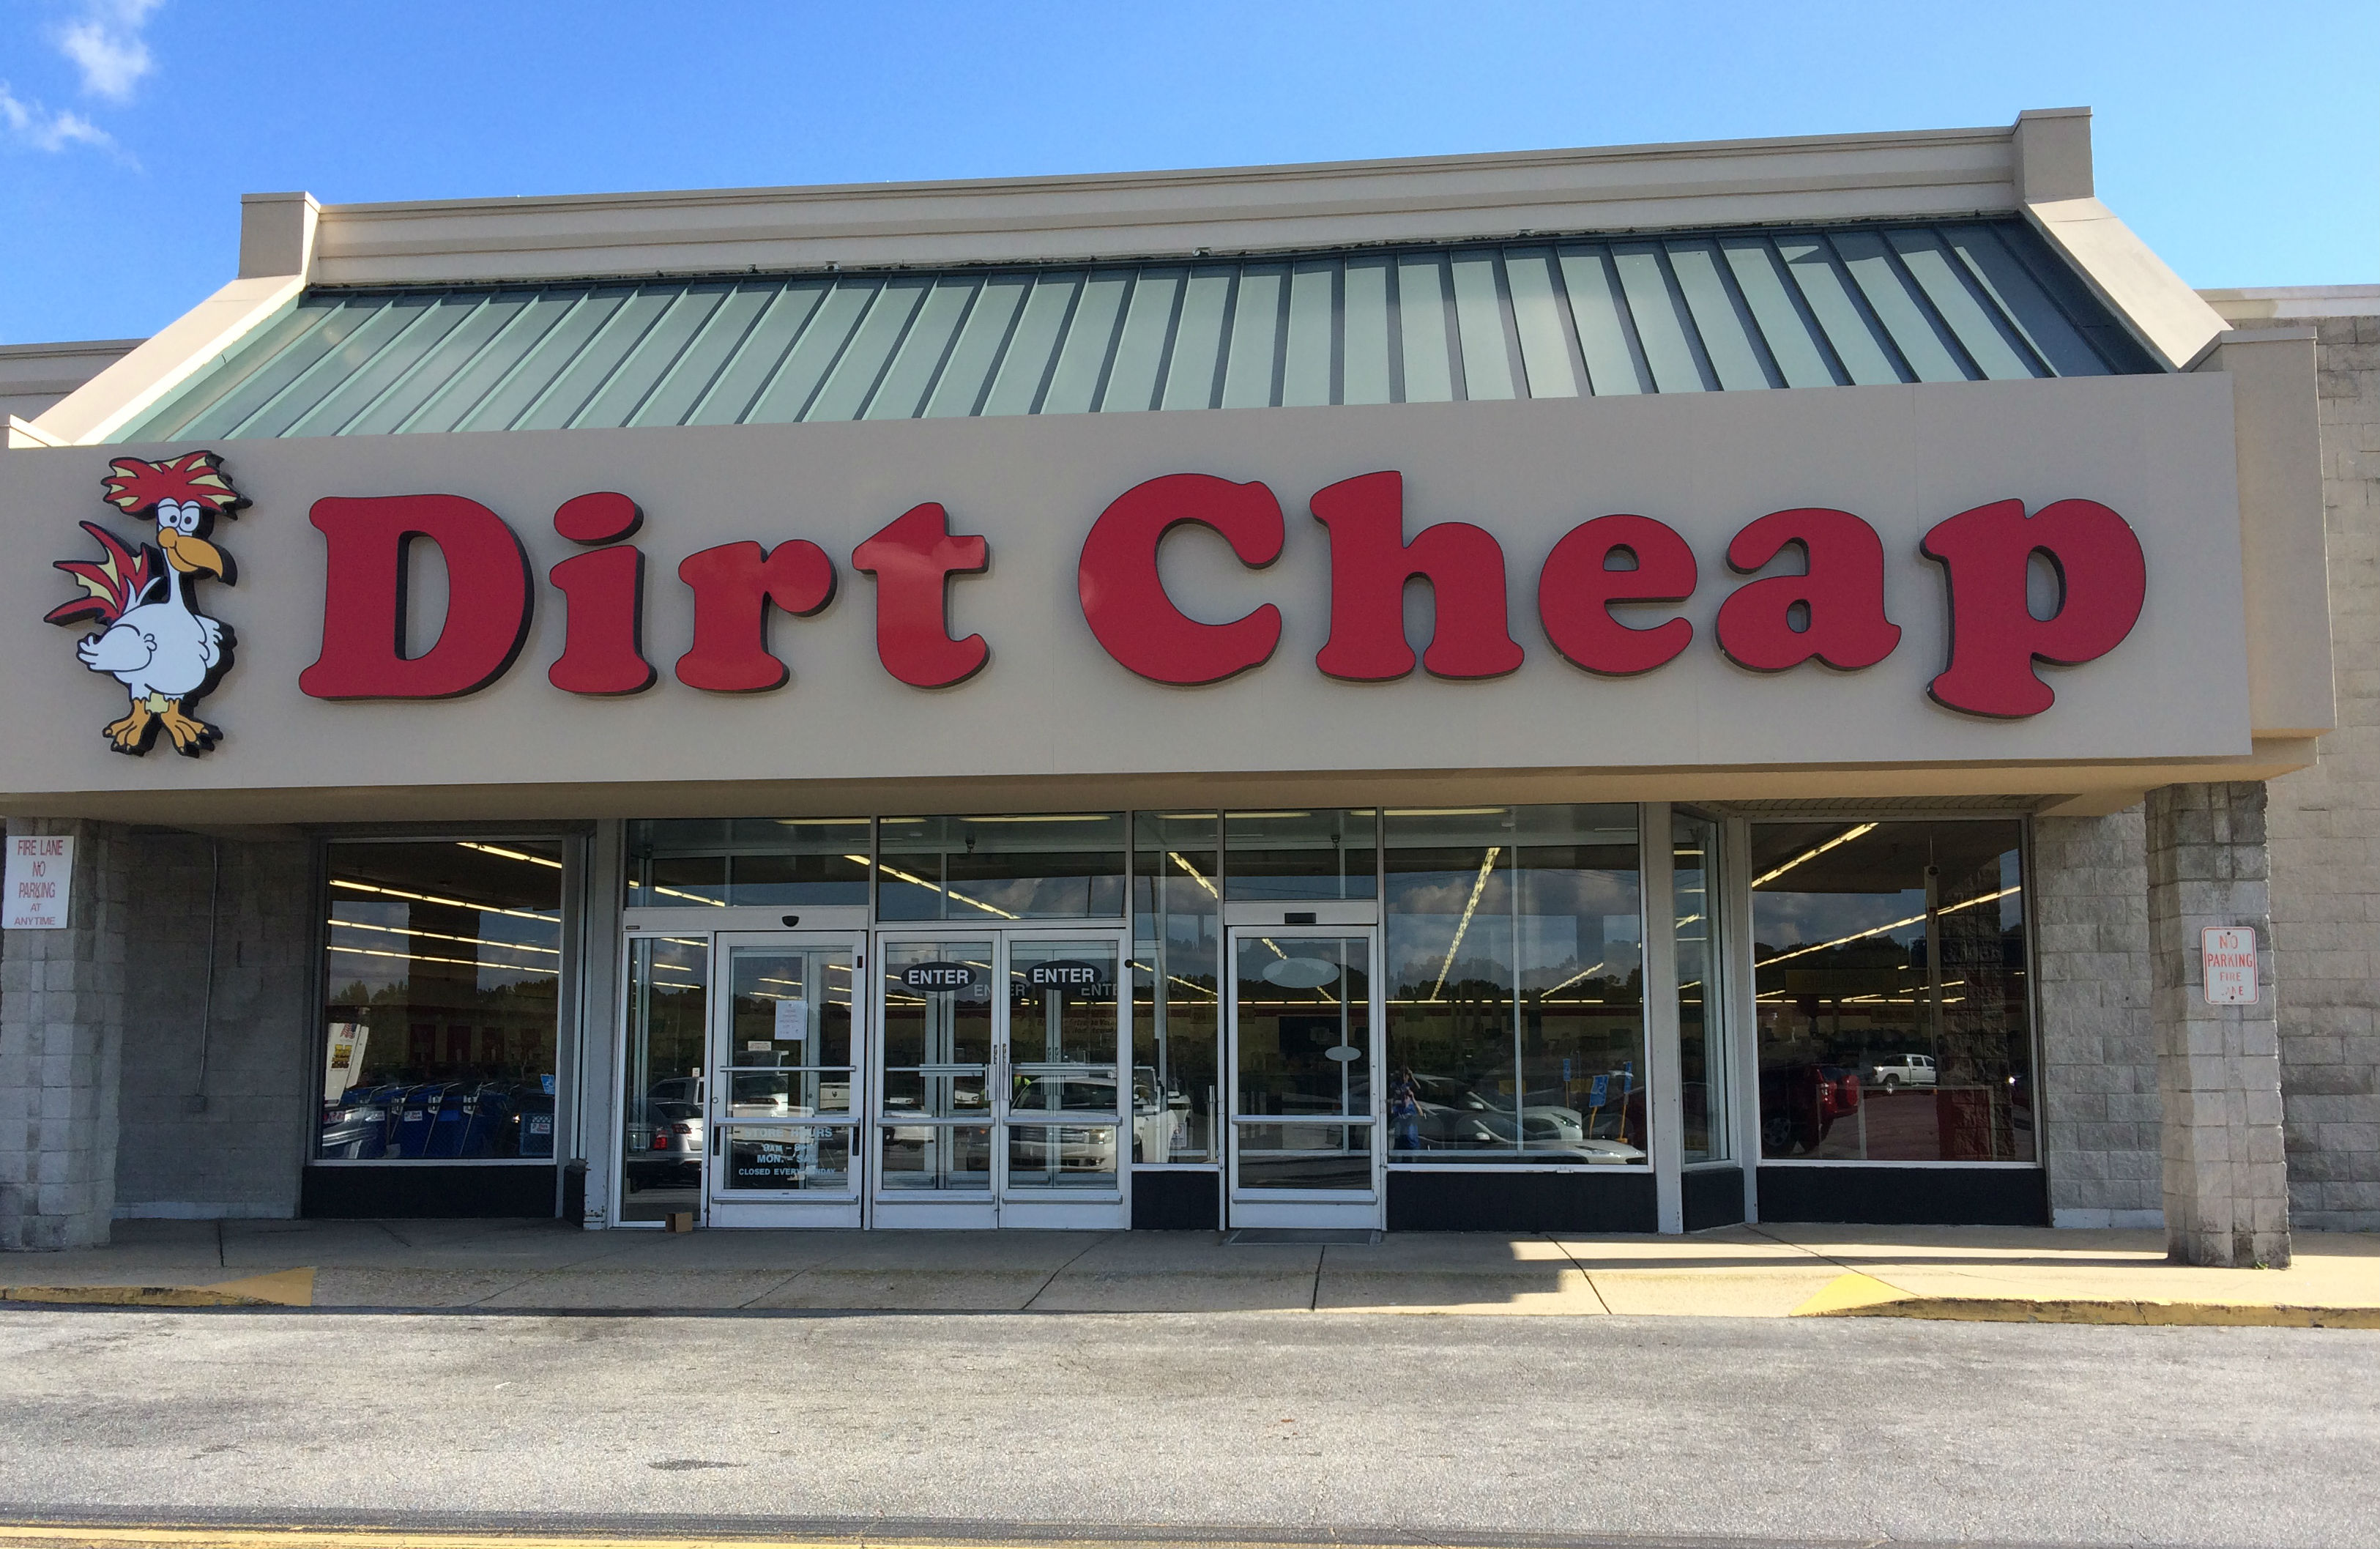 Columbus, GA Dirt Cheap